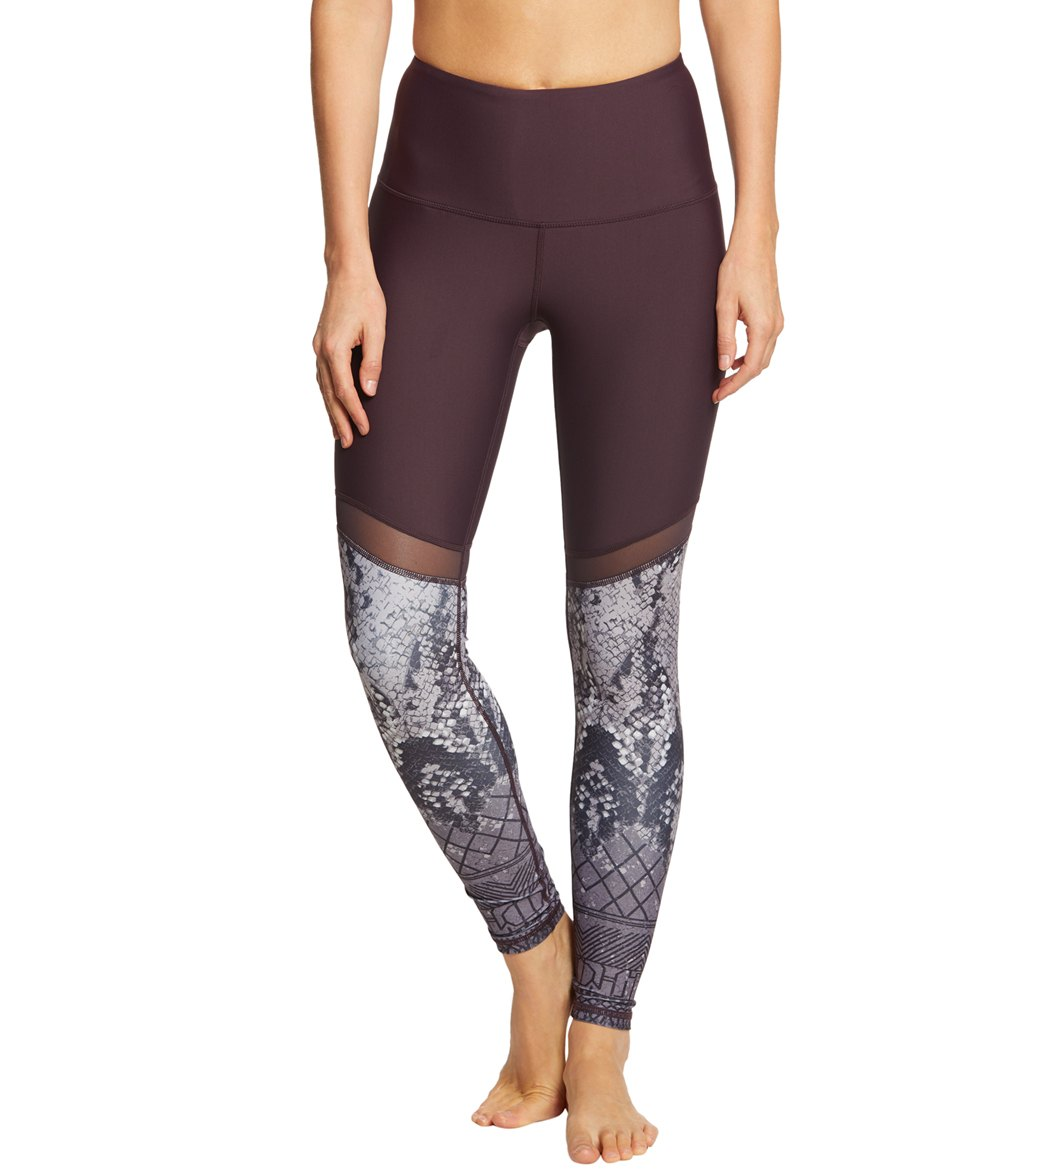 4e61236777876 Manduka Engineered High Line Yoga Leggings at YogaOutlet.com - Free Shipping